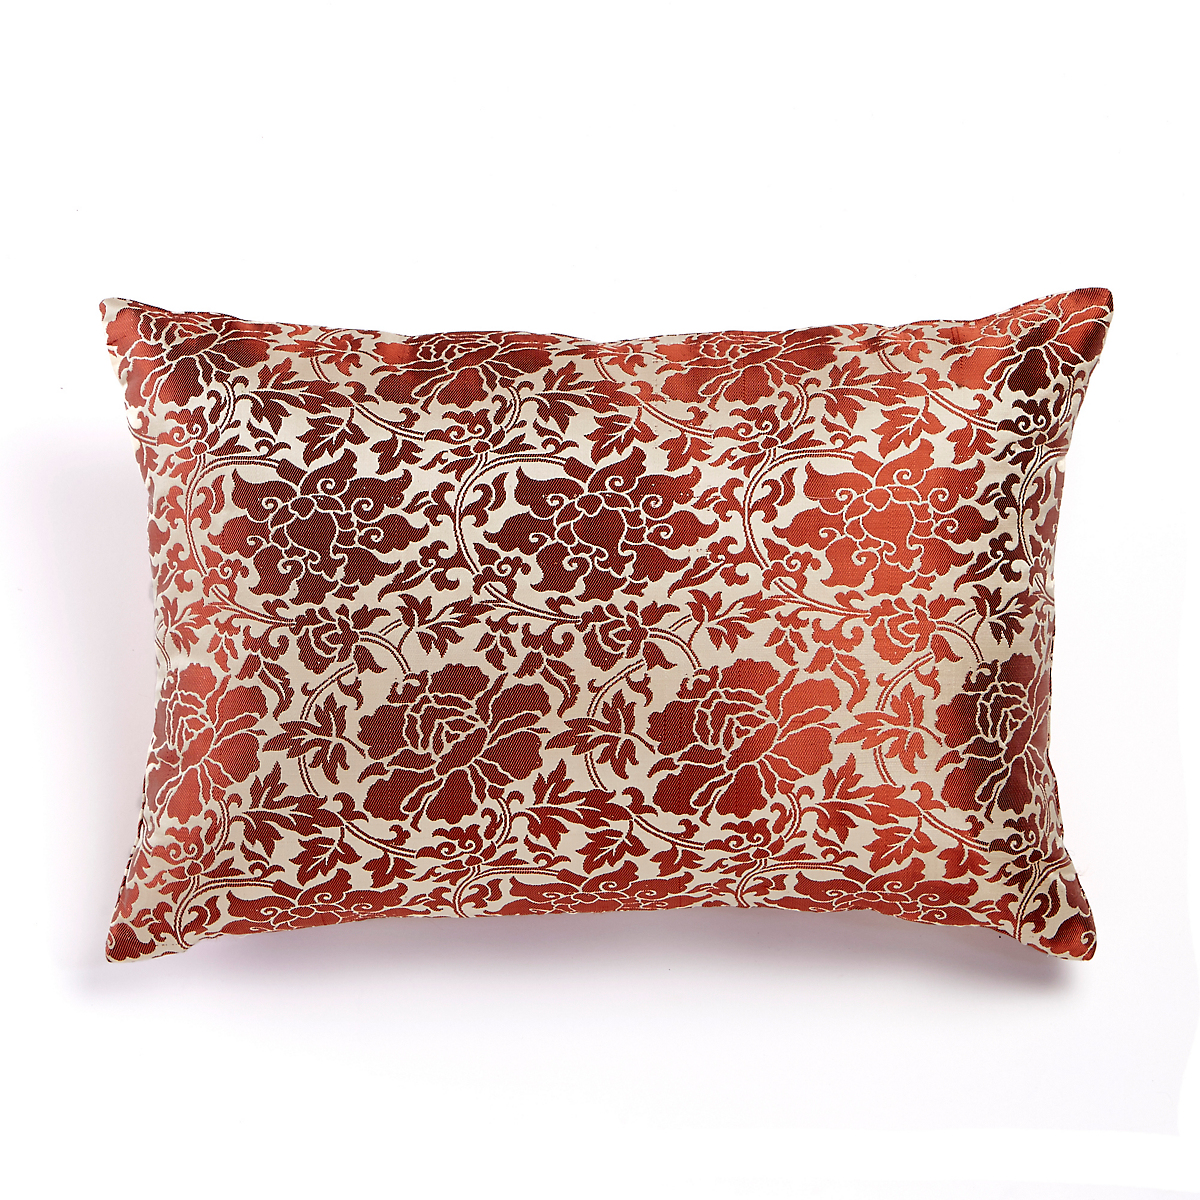 Brinda Orange Floral Pillow